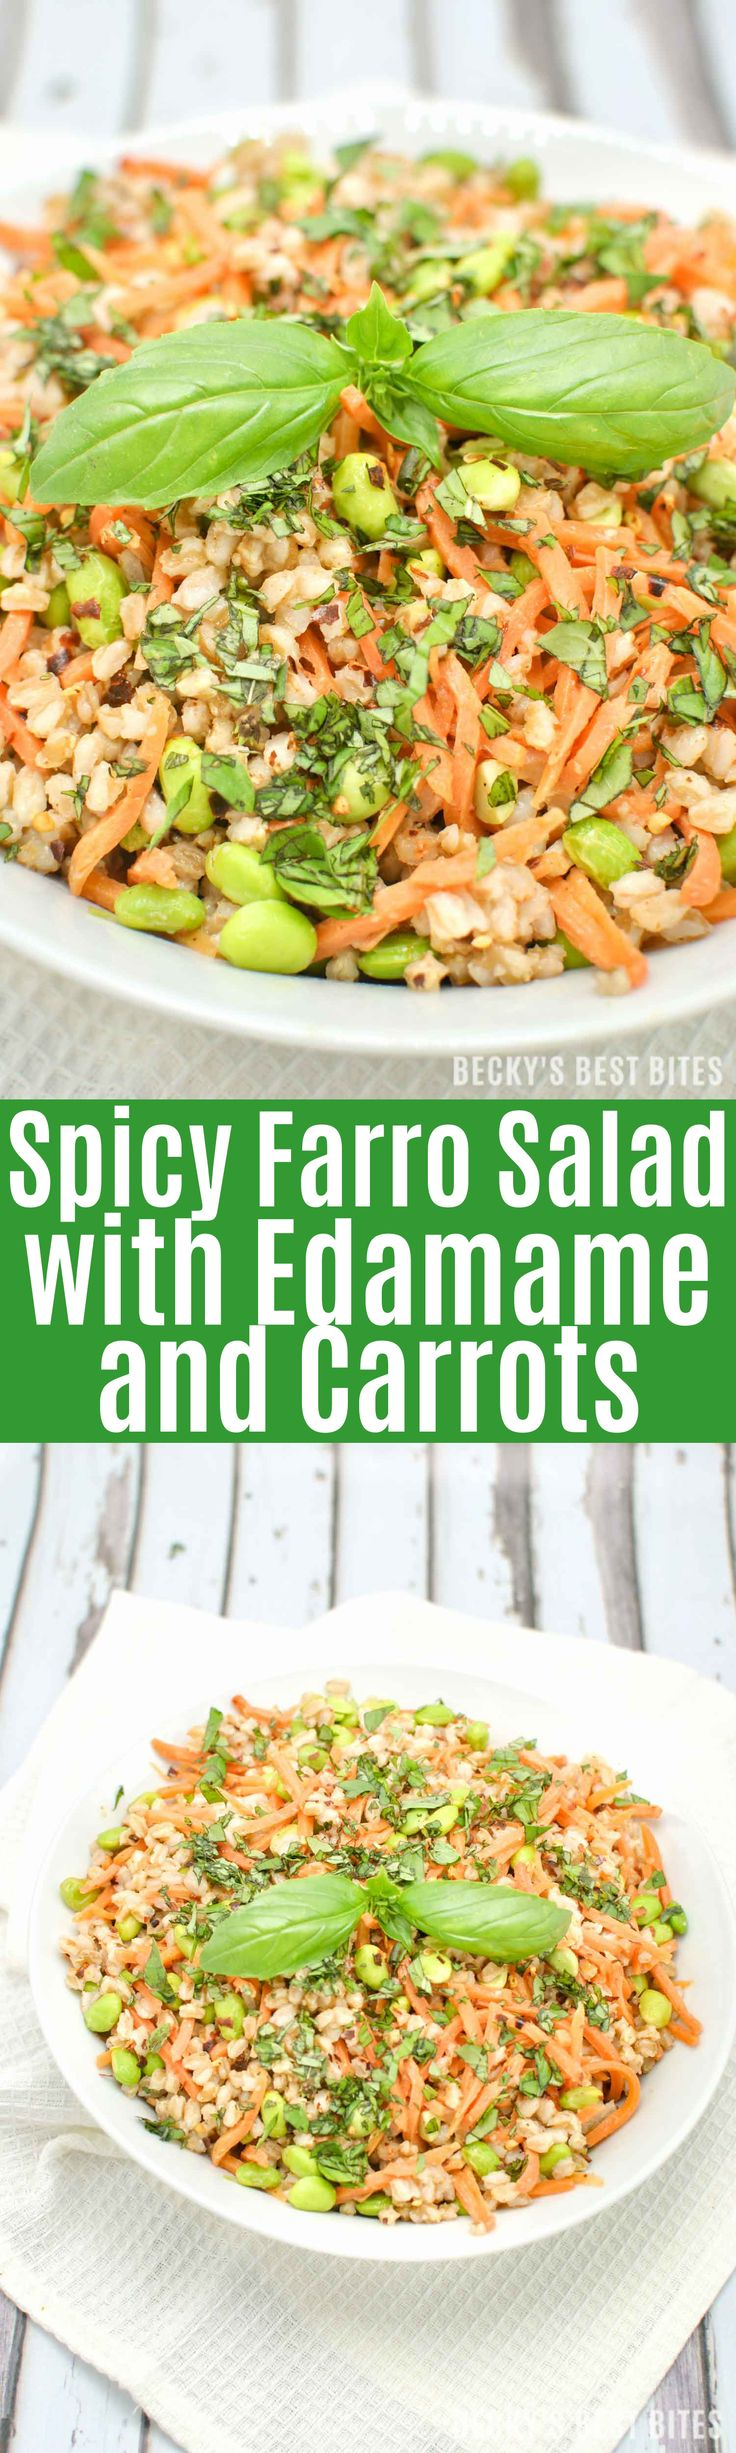 Spicy Farro Salad with Edamame and Carrots is a vegan, high protein, high fiber vegetarian main meal or non-vegetarian side dish perfect for the Spring/Summer months! | beckysbestbites.com